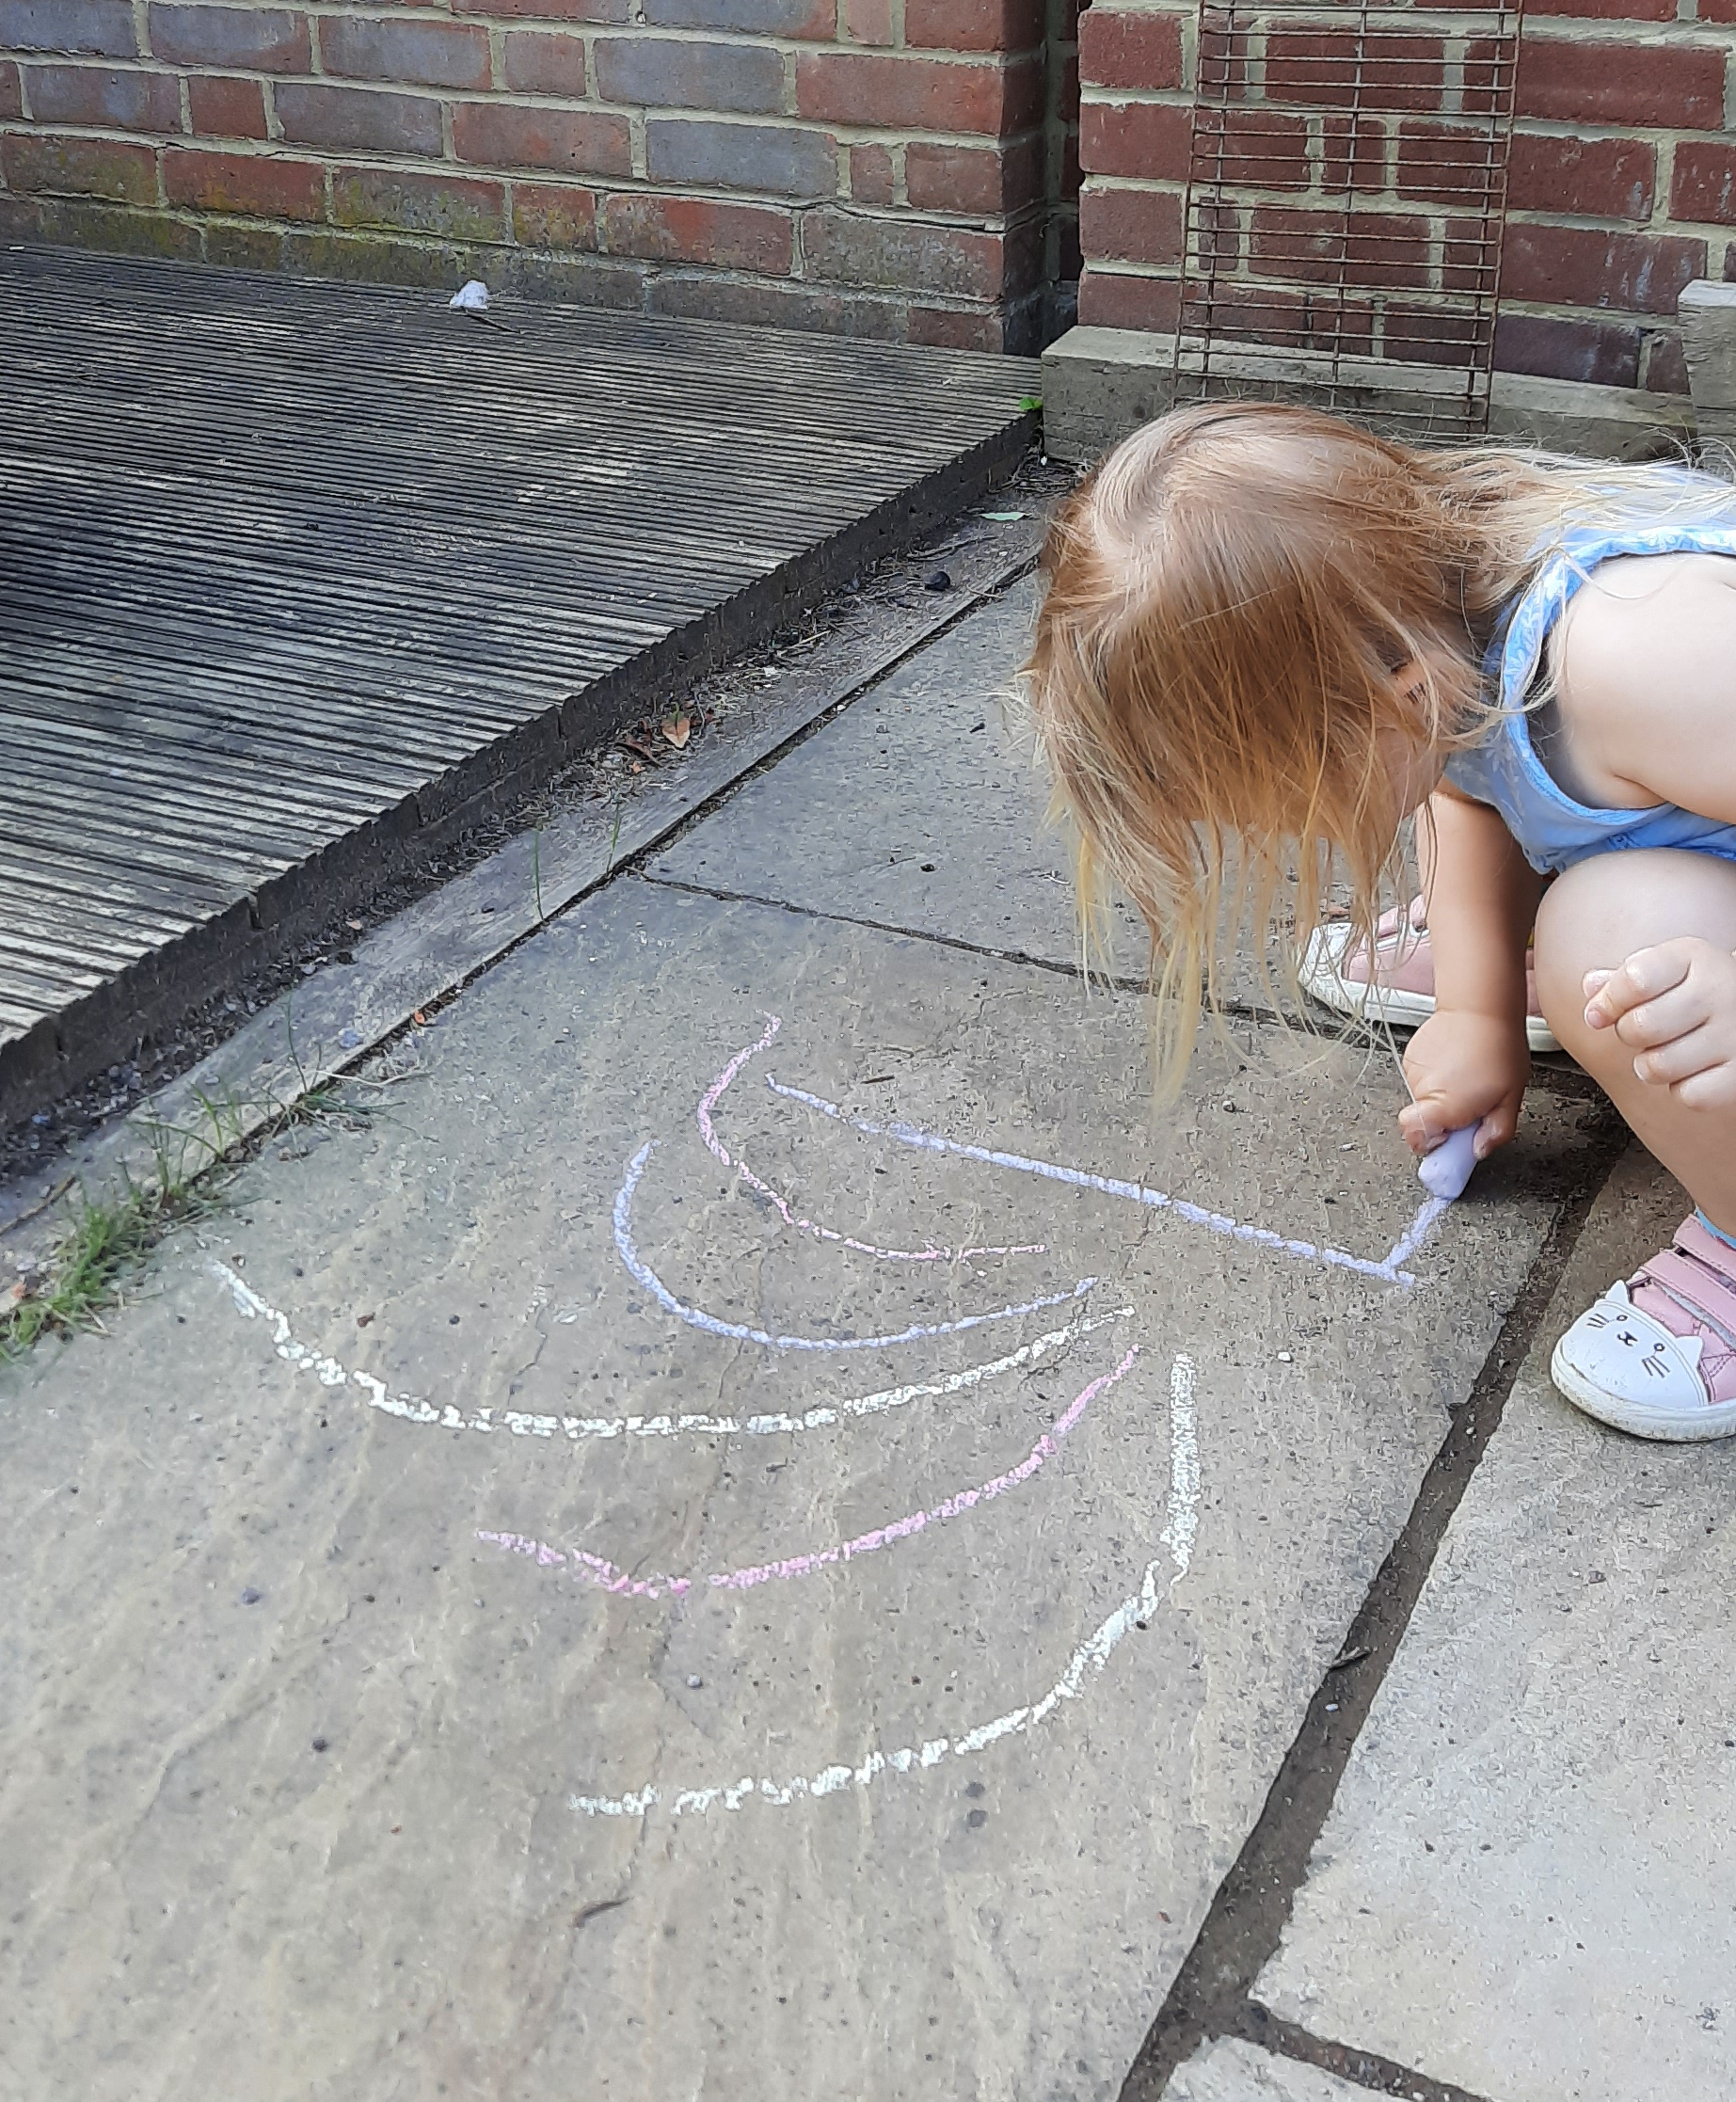 Making chalk rainbows